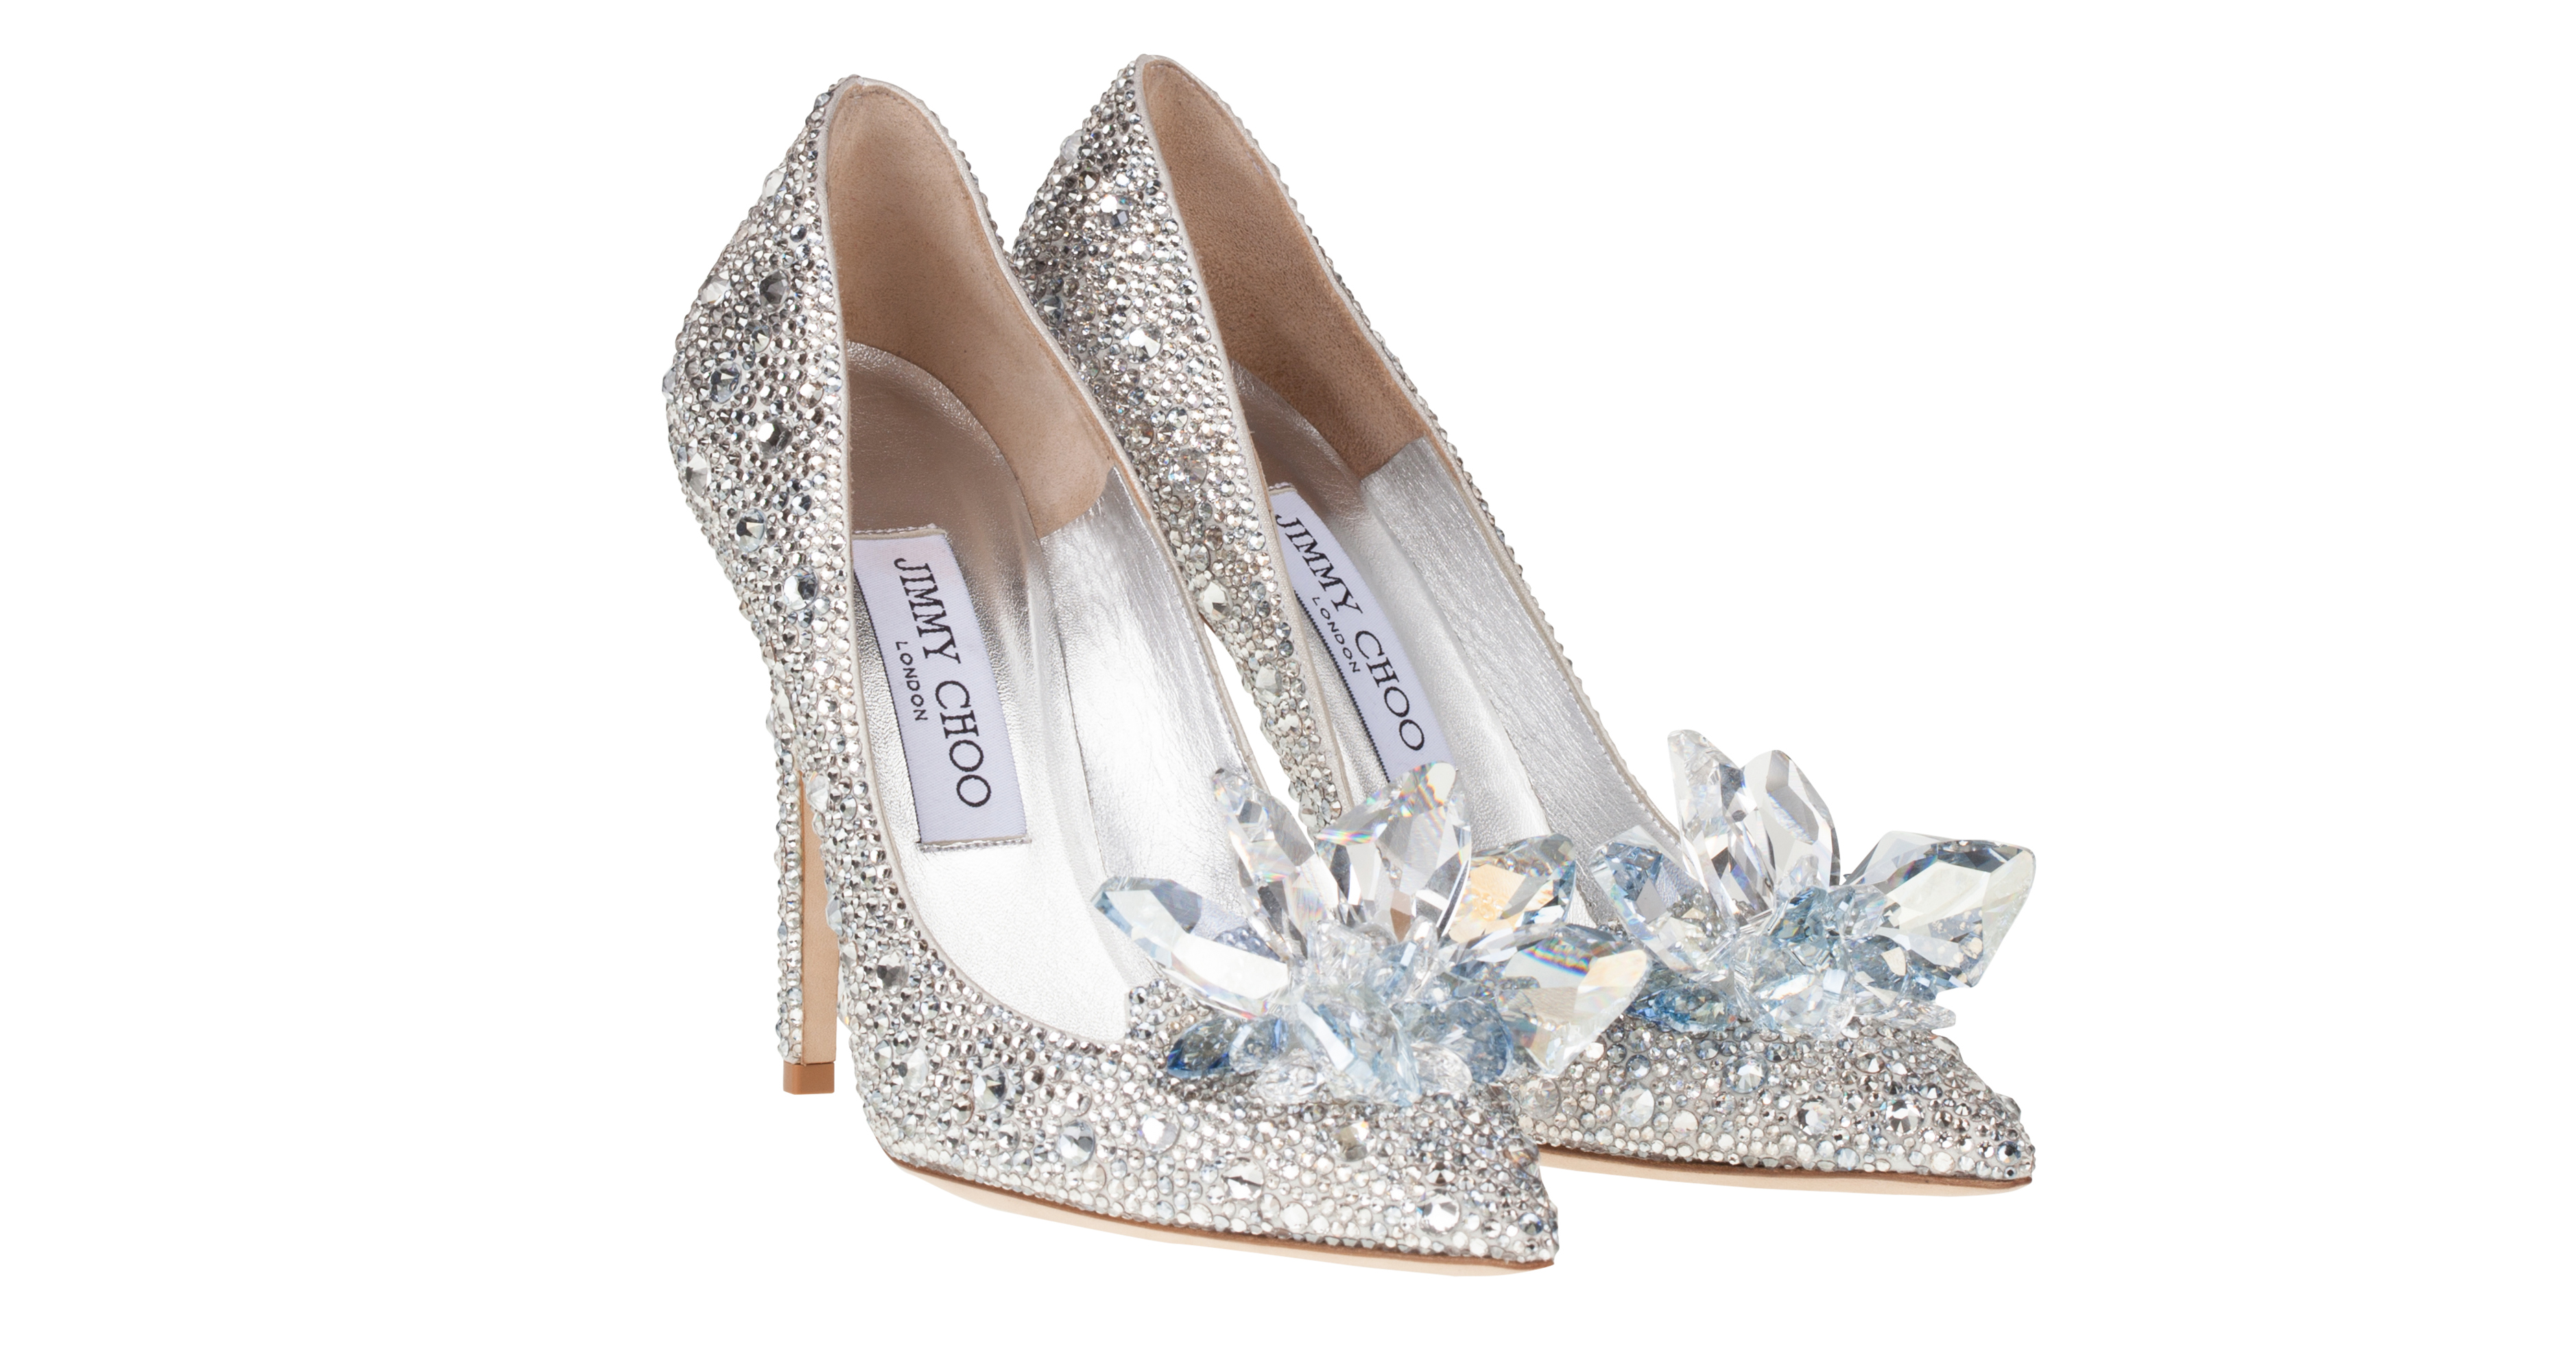 Jimmy Choo creates modern design Cinderella Shoe worthy of Fairy tale miami Top Hotel Suites in Miami Beach feature final miami Top Hotel Suites in Miami Beach feature final